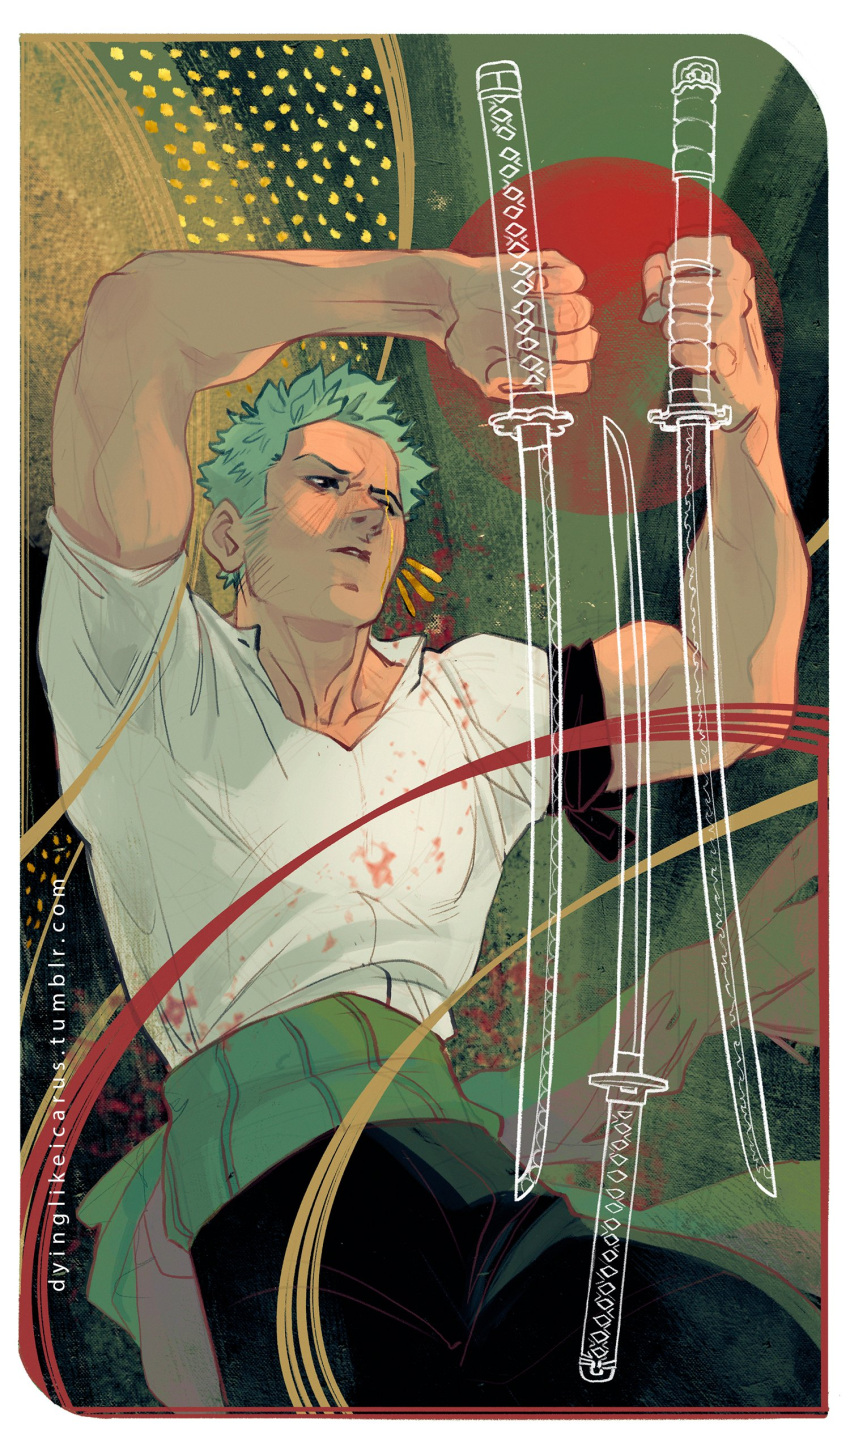 13_(dyinglikeicarus) 1boy absurdres arms_up biceps black_pants feet_out_of_frame fighting_stance green_hair highres holding holding_sword holding_weapon katana male_focus muscular muscular_male one_piece pants pectorals roronoa_zoro scar scar_across_eye scar_on_face shirt short_hair sideburns solo sword weapon white_shirt